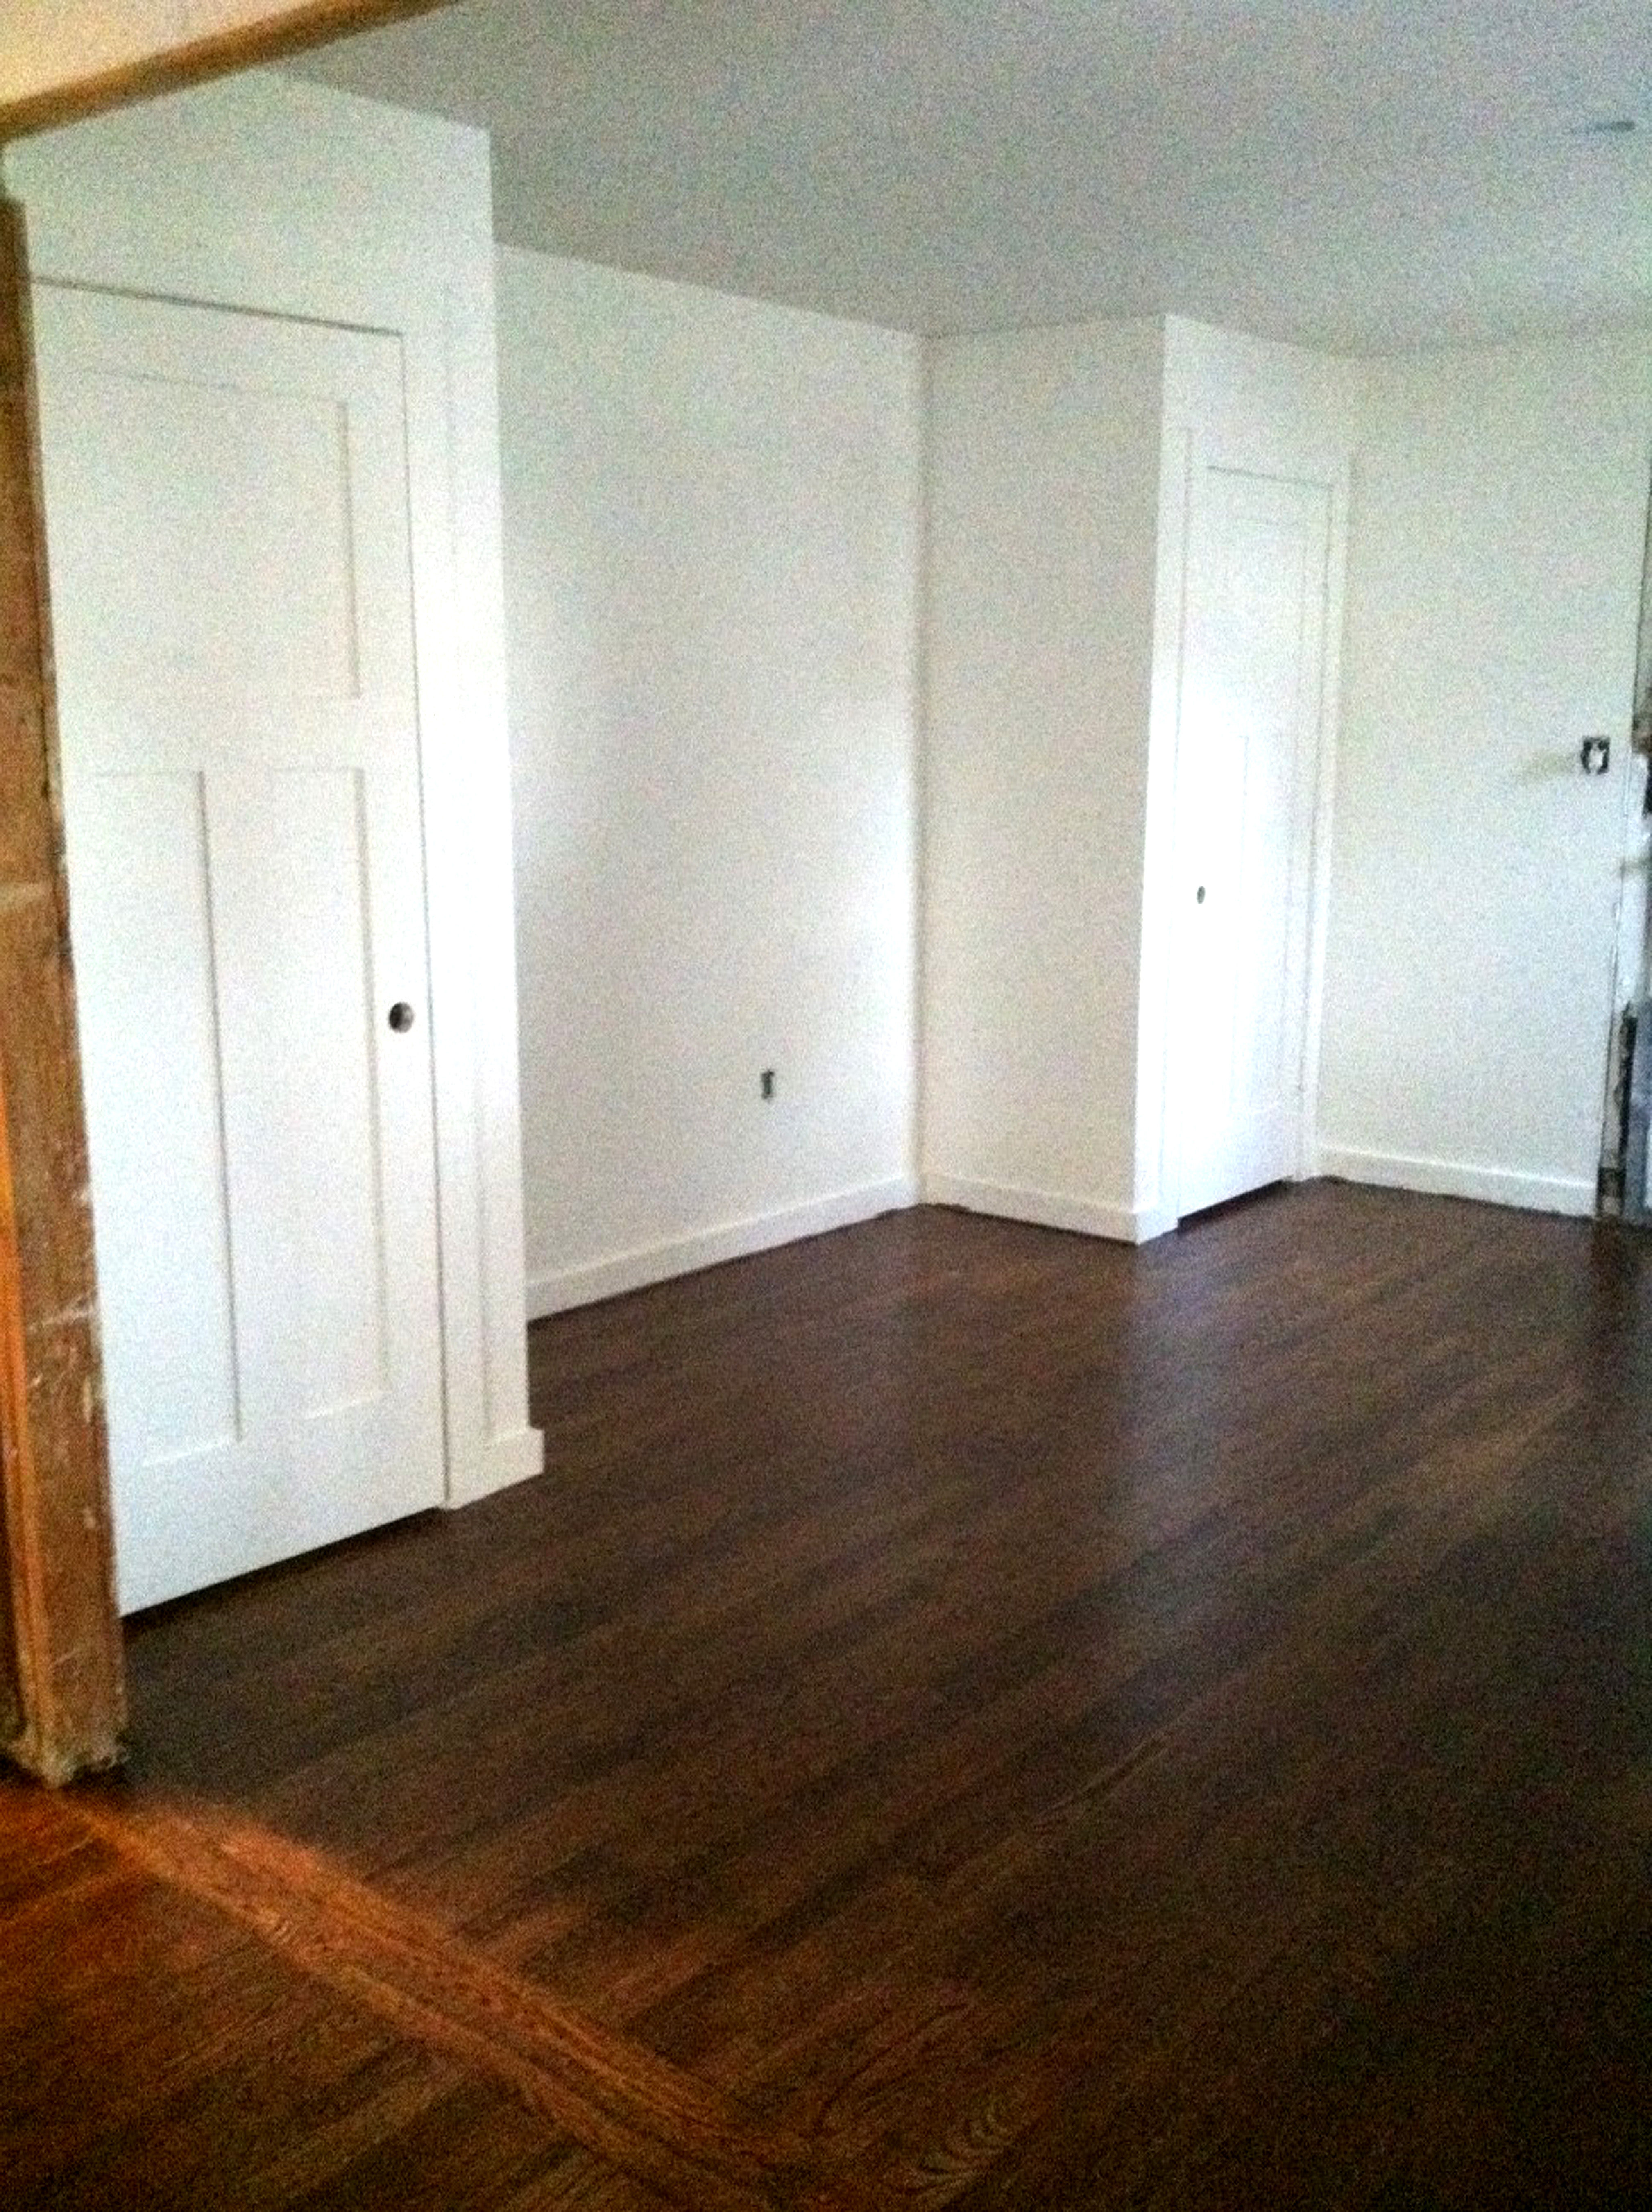 Dark Stain on Hardwood Floors - thewhitebuffalostylingco.com